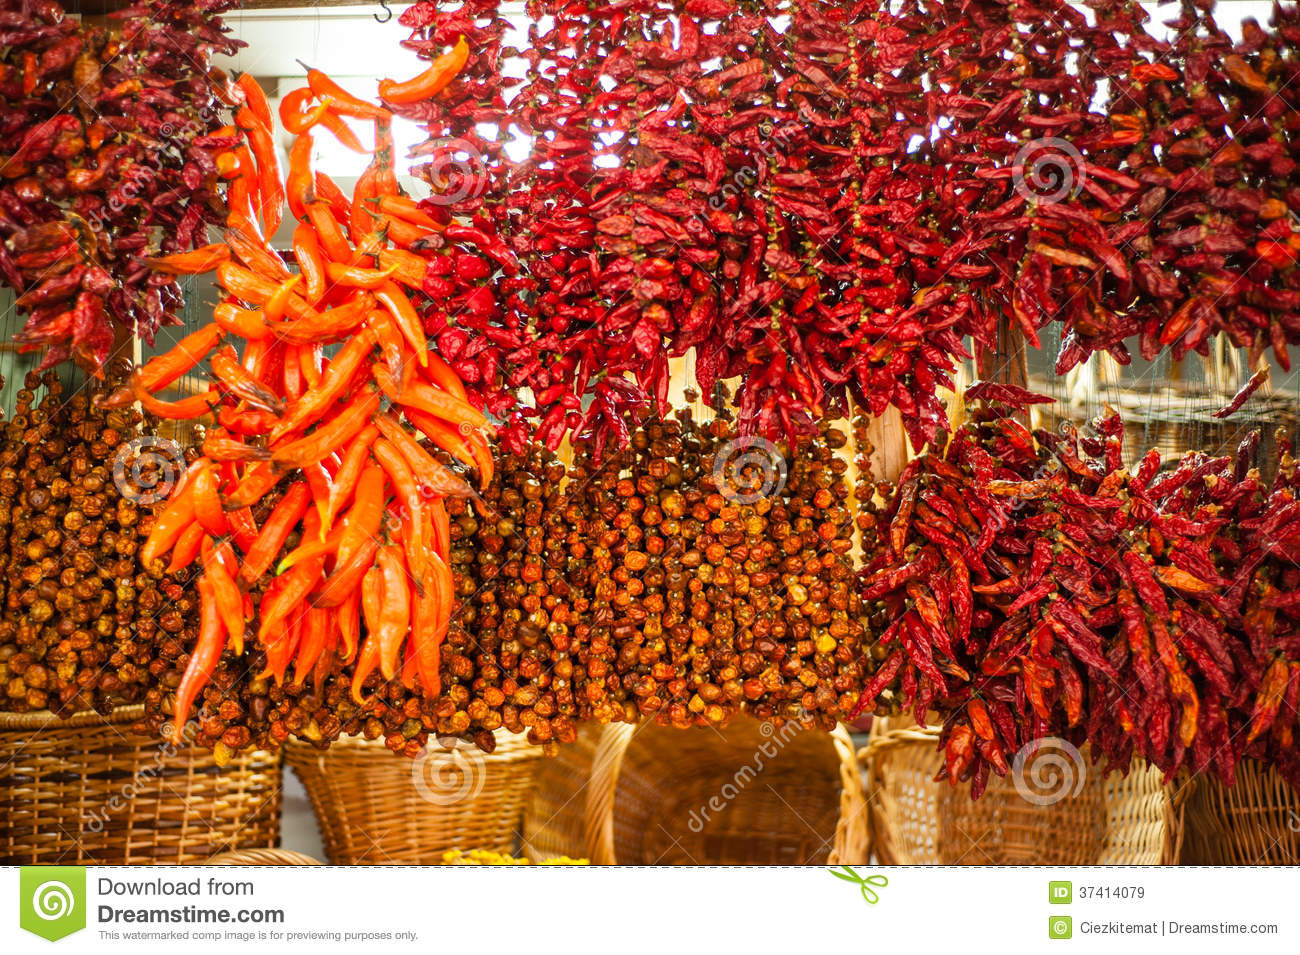 Chili peppers on market stall